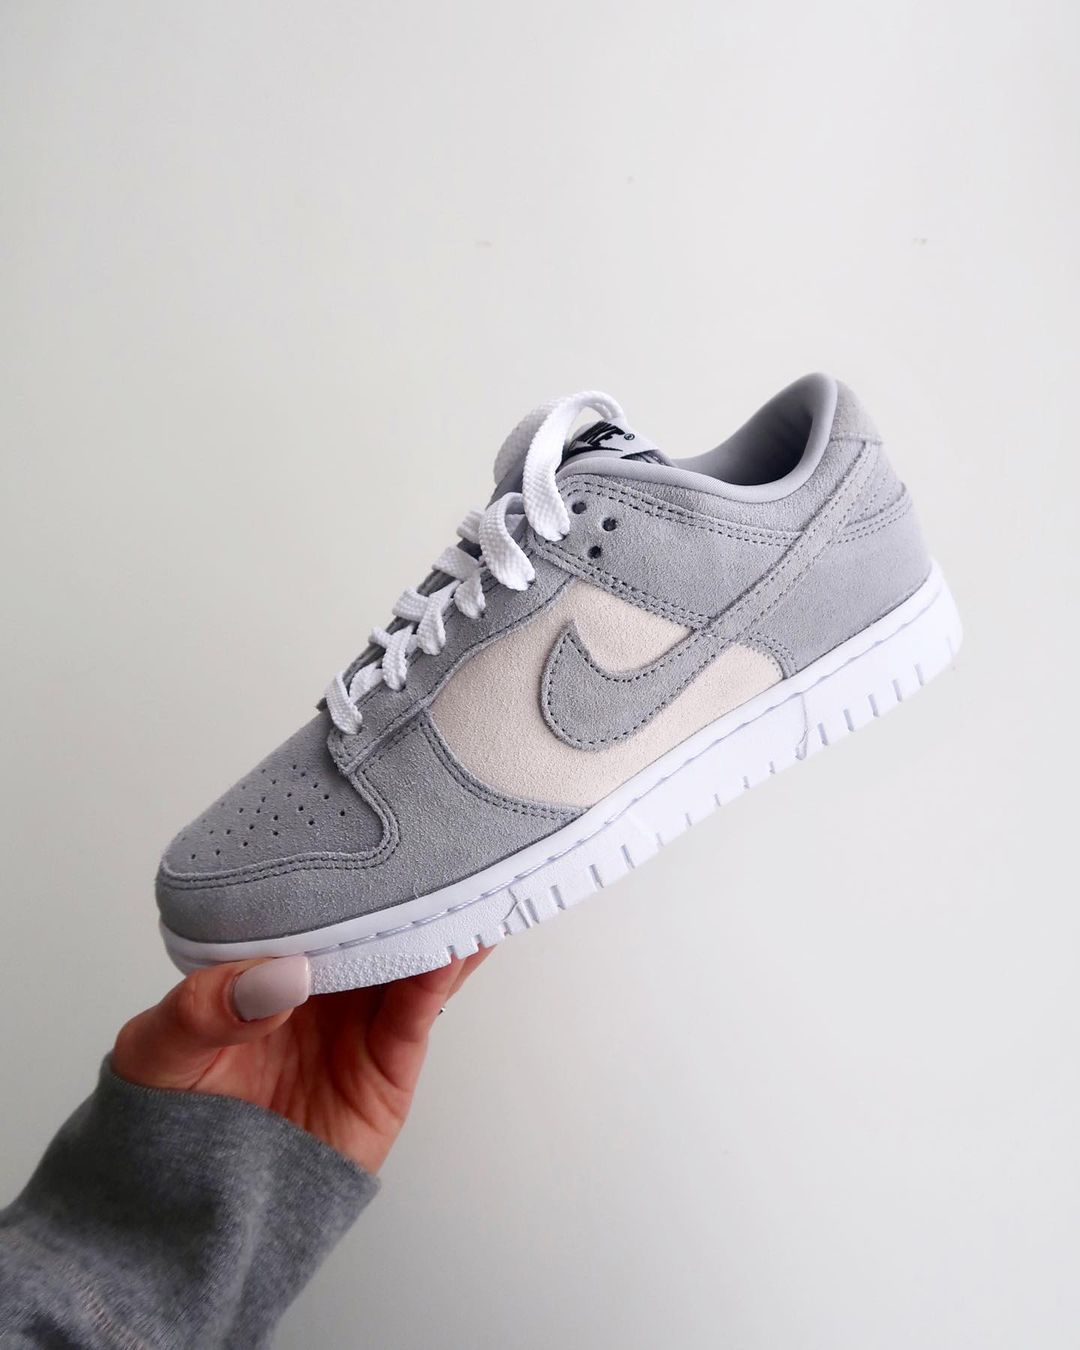 Nike Dunk Low by You Neutral Grey kympham_